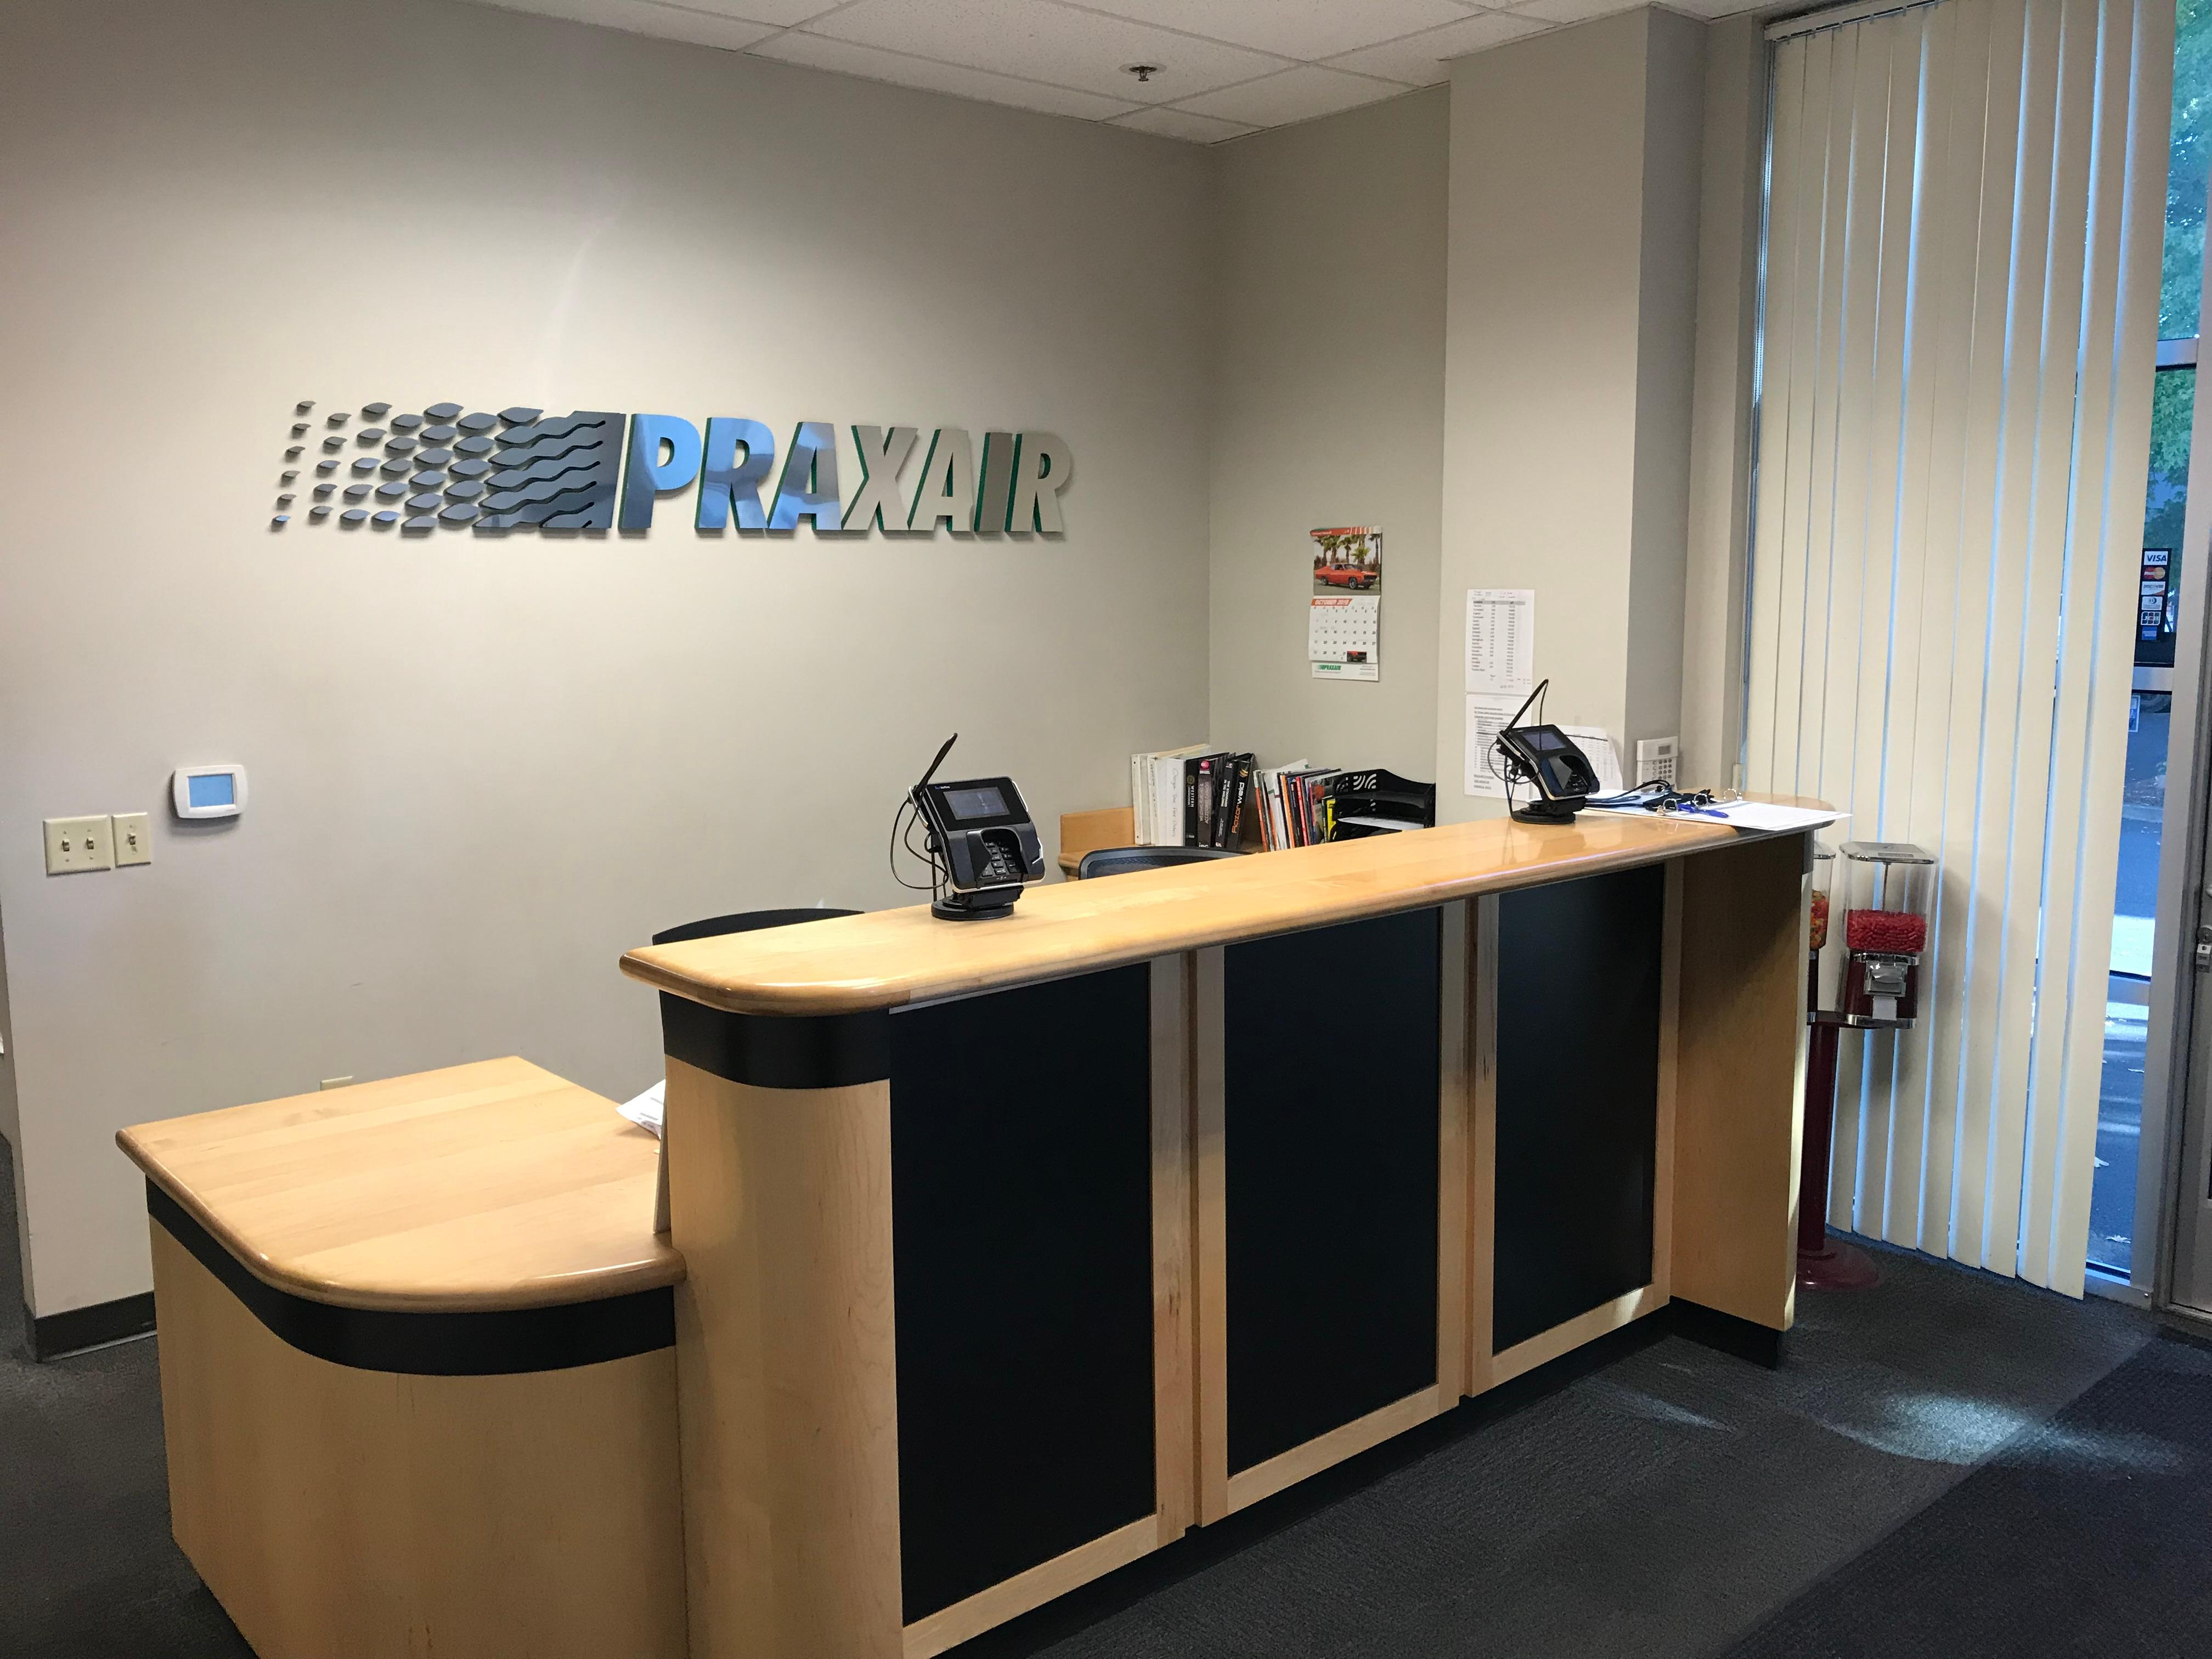 Praxair Welding Gas and Supply Store | 603 SE Victory Ave, Suite #200, Vancouver, WA, 98661 | +1 (360) 694-1338